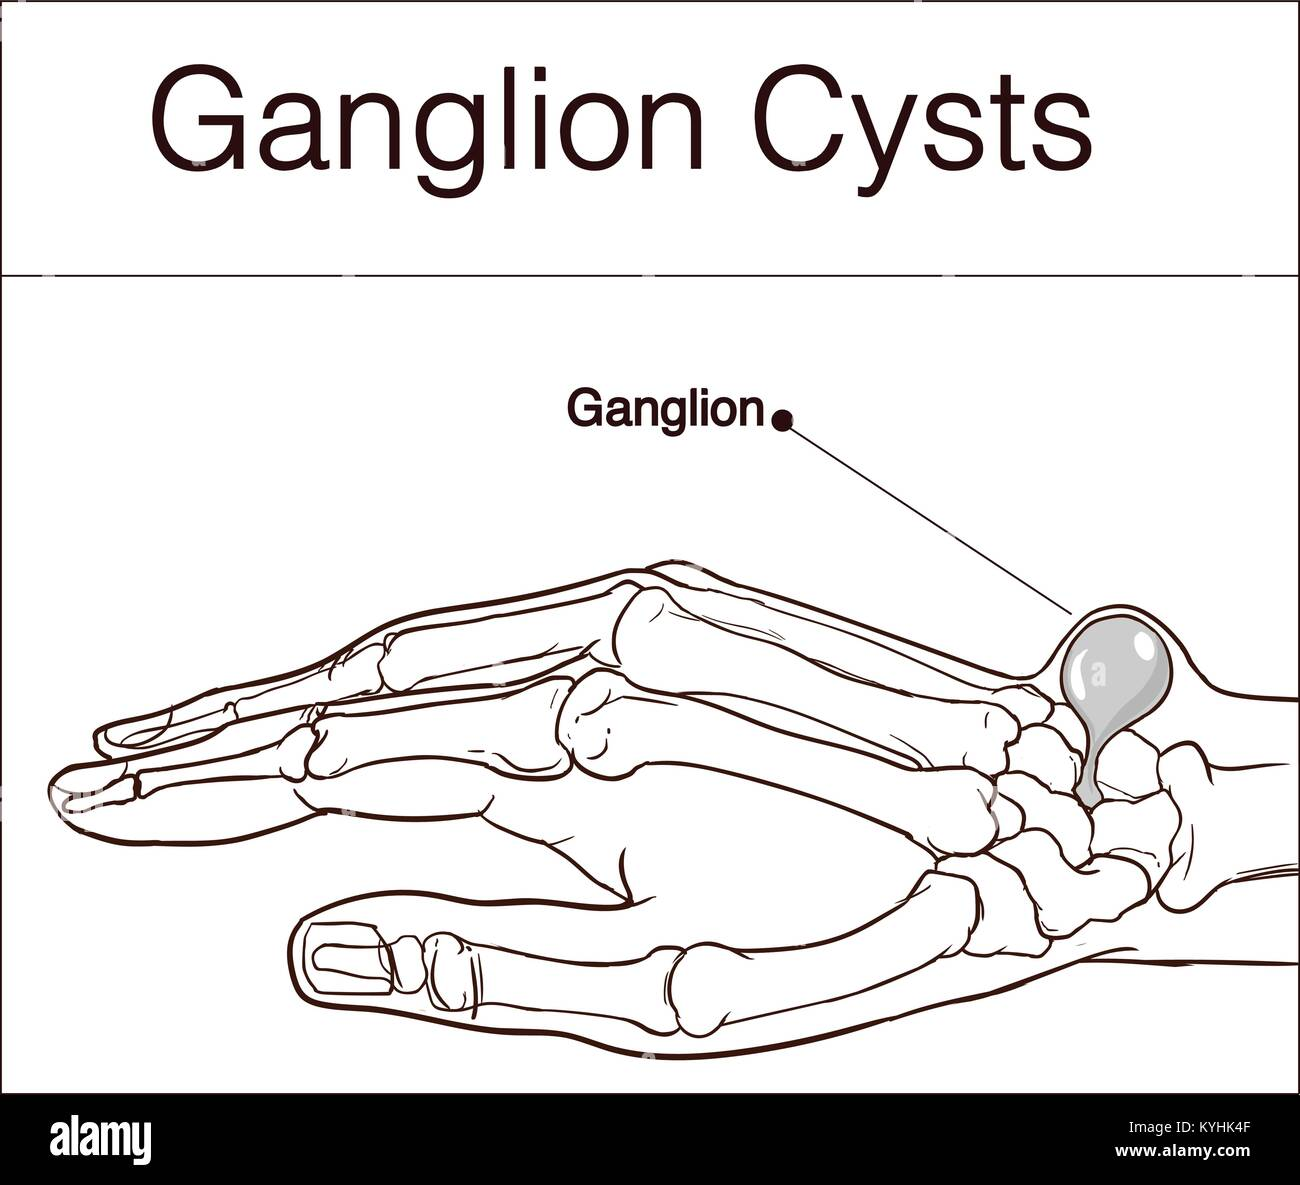 Ganglion Cyst Stock Photos & Ganglion Cyst Stock Images